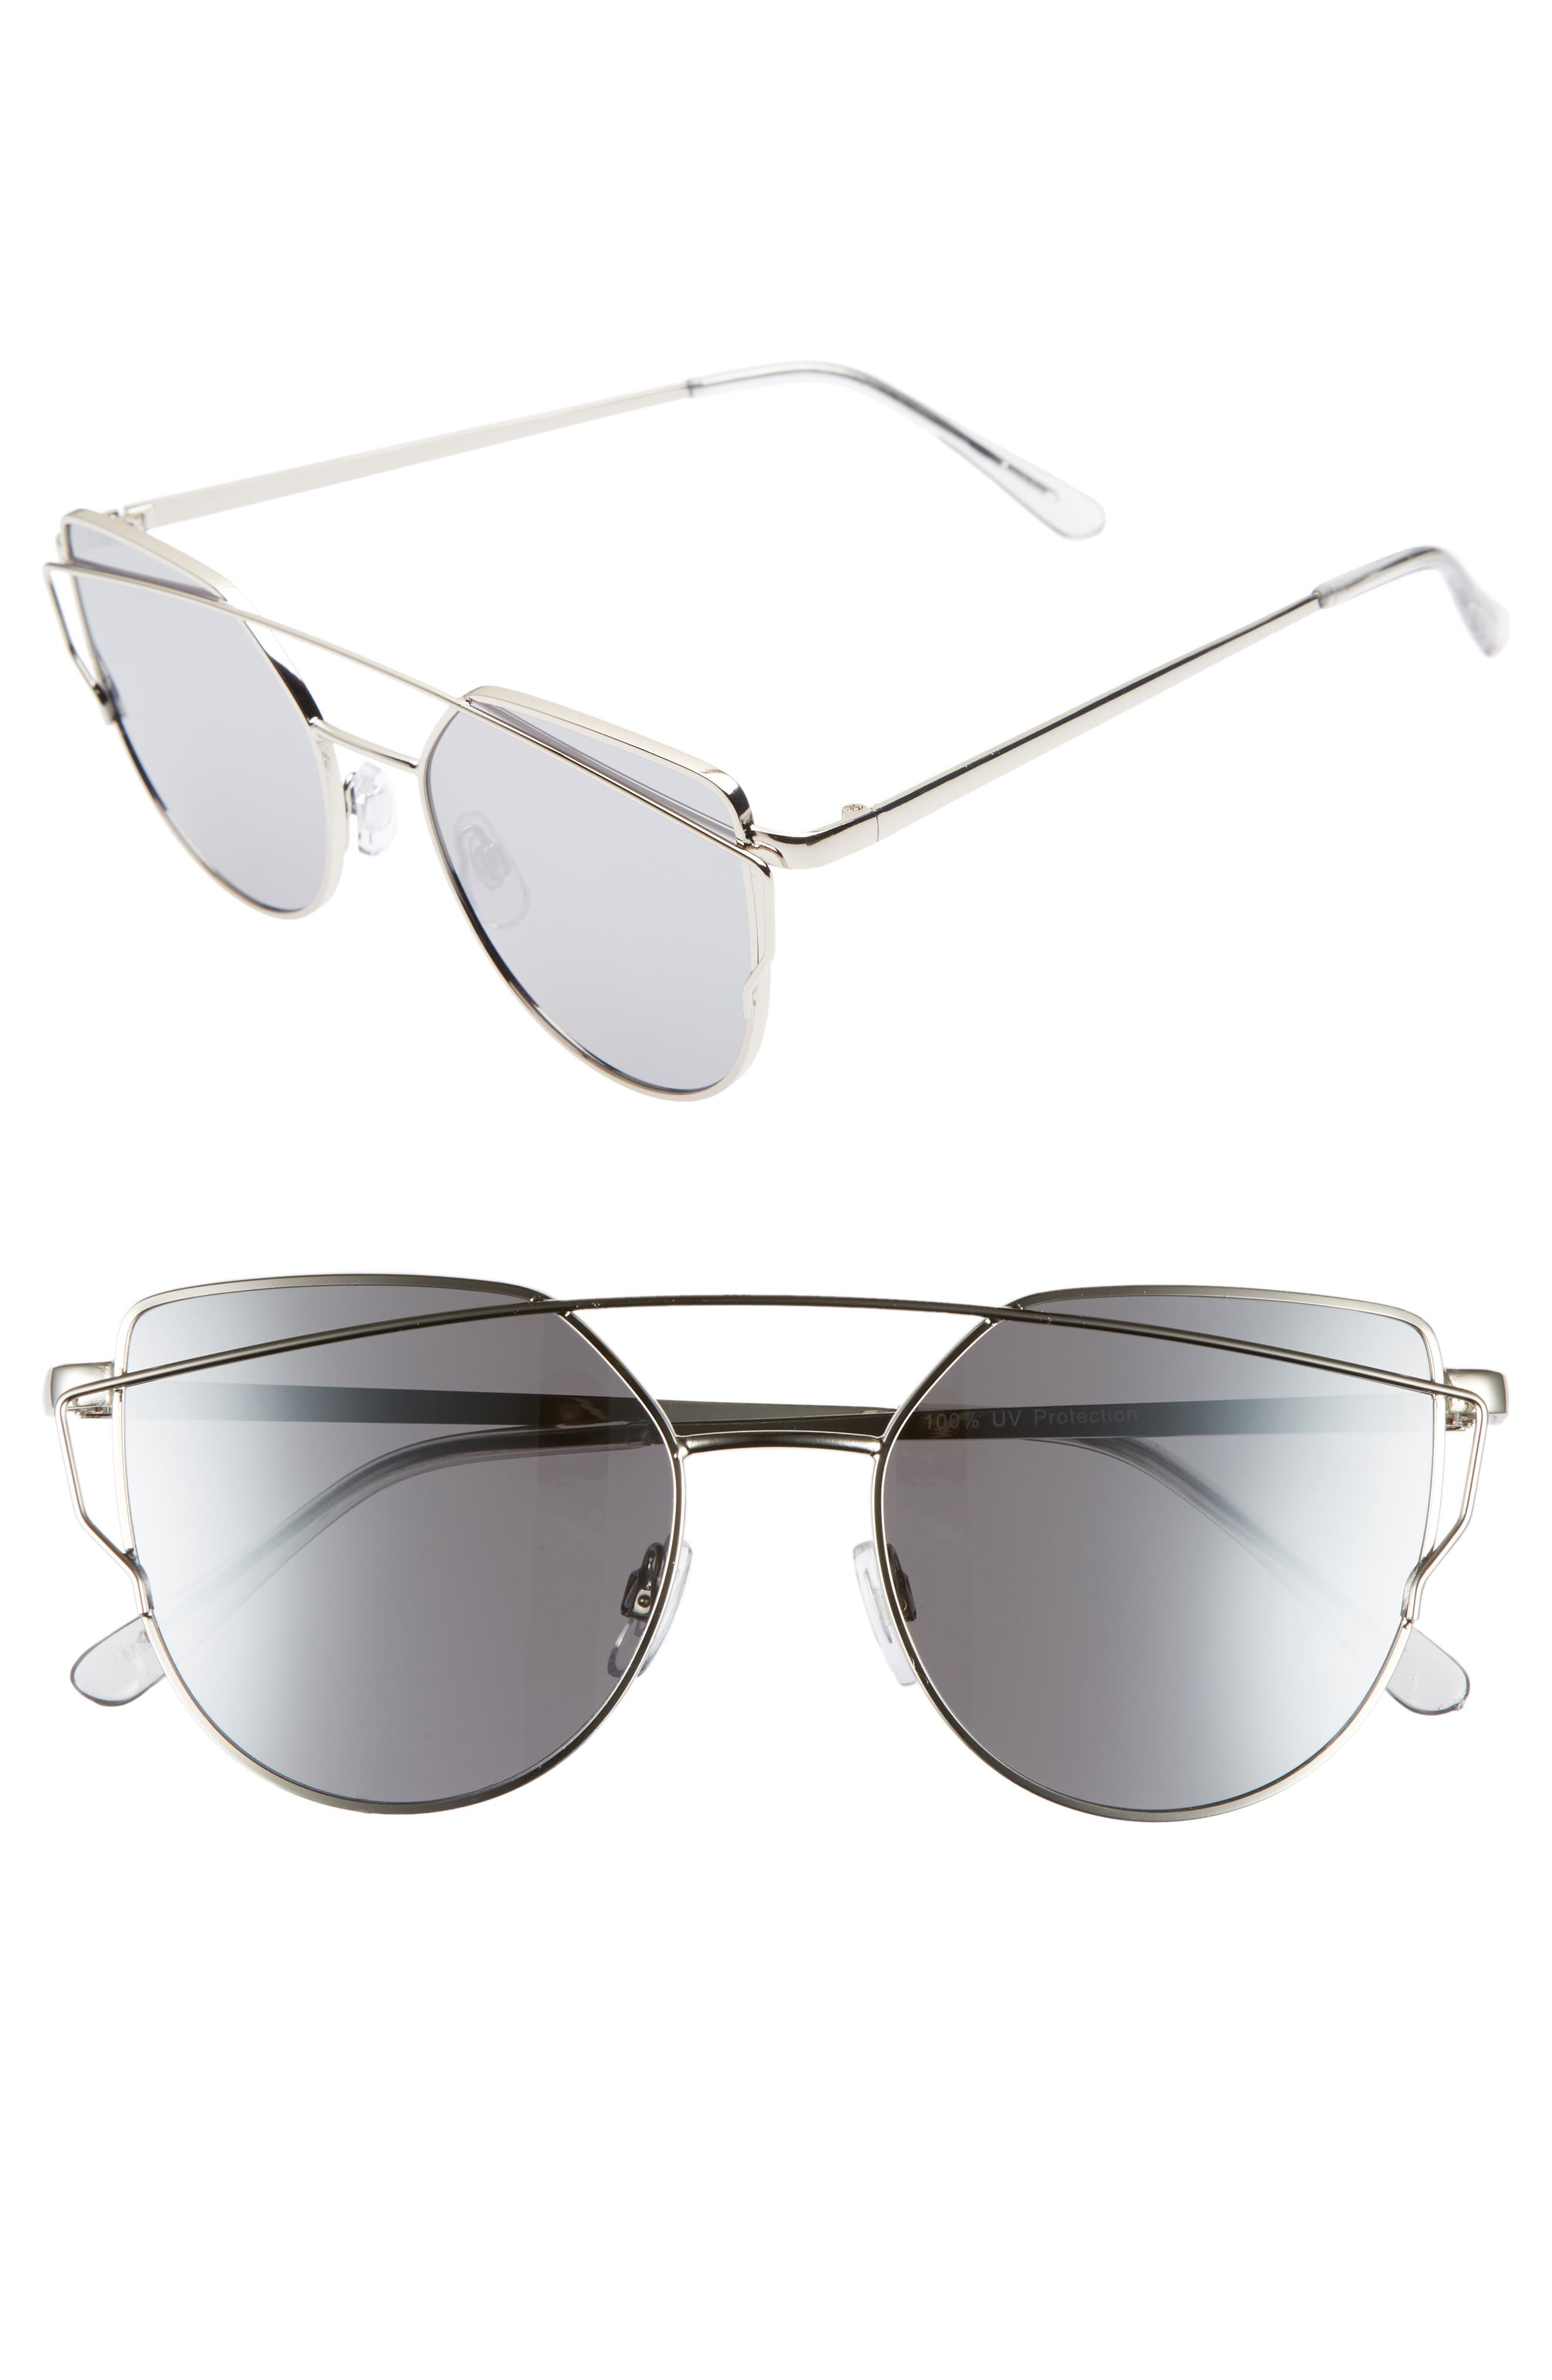 51mm Thin Brow Angular Aviator Sunglasses,                             Main thumbnail 1, color,